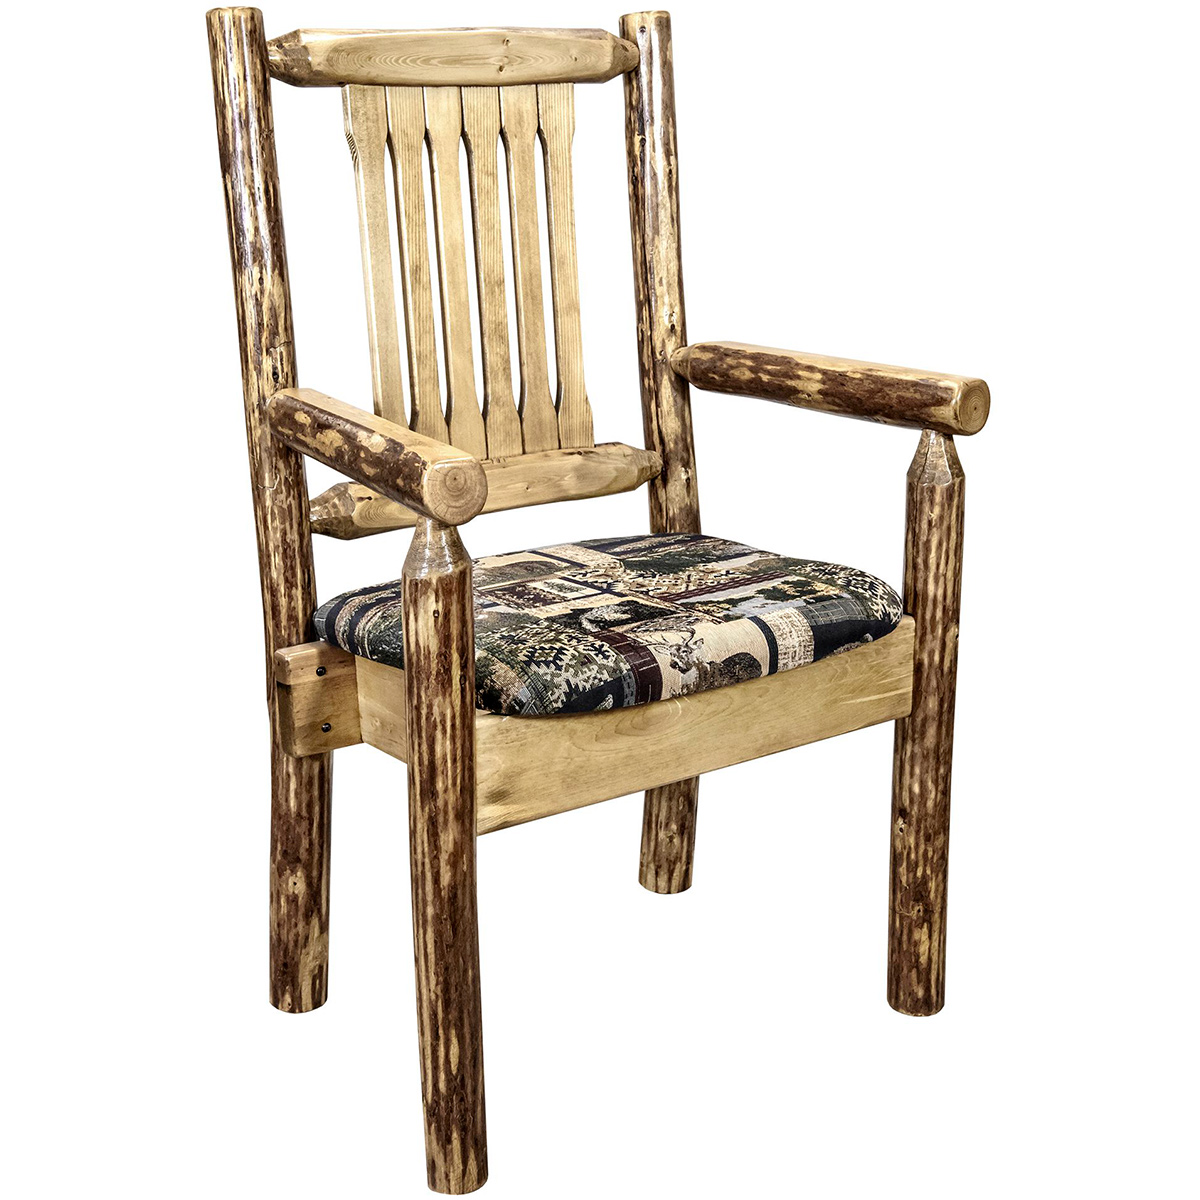 Woodsman Captain's Chair with Woodland Upholstered Seat